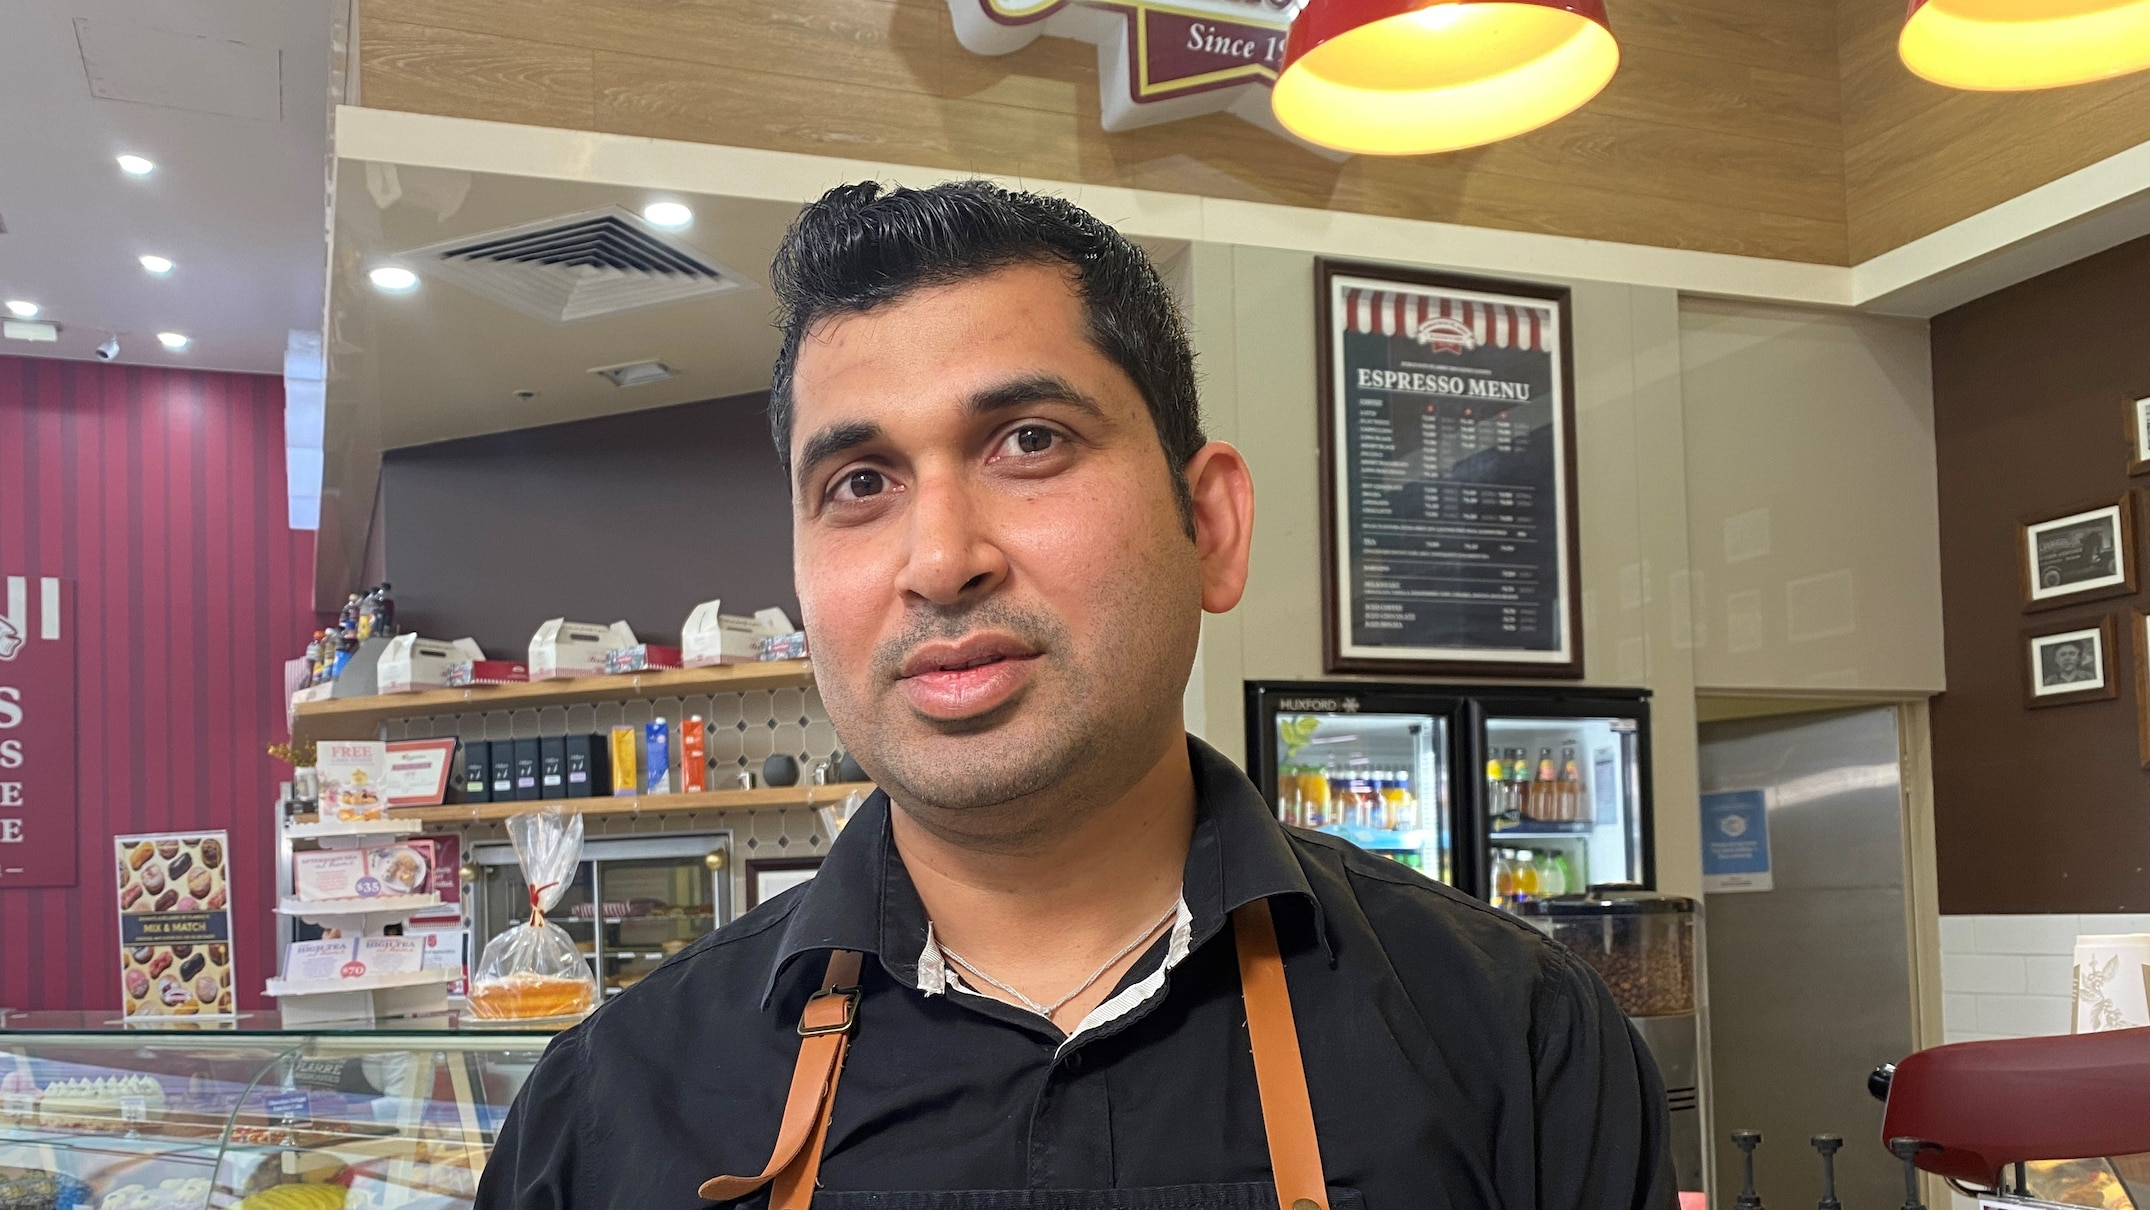 Pranay Mahajan is a franchisee of the bakery chain Ferguson Plarre with one store in Melbourne. (ABC News: Emilia Terzon)